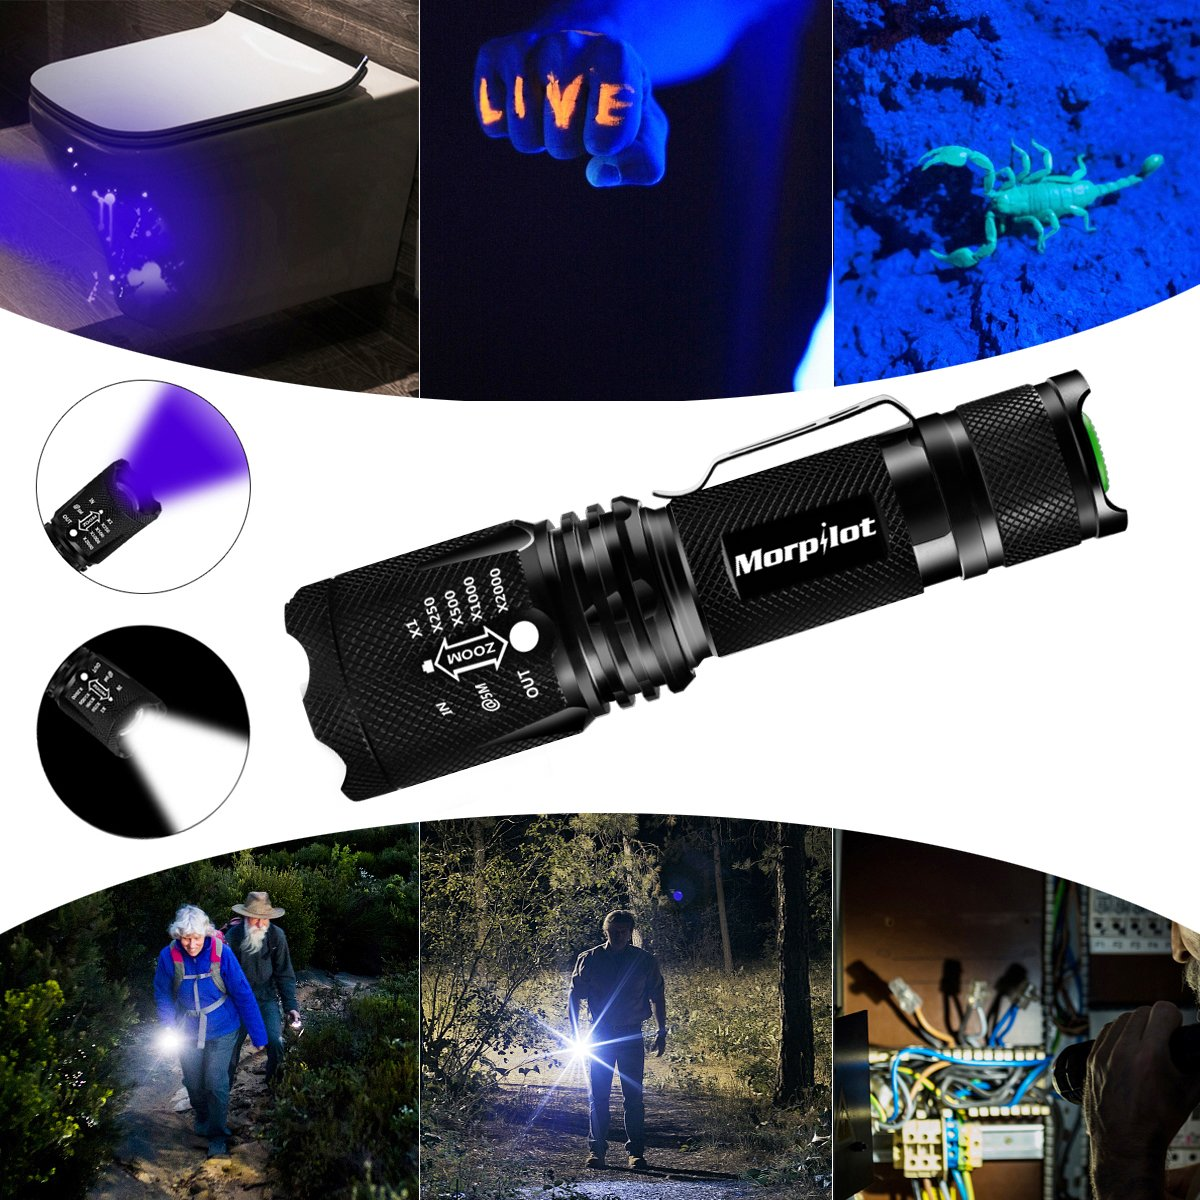 Keenstone 2 in 1 Black Light UV Flashlight & LED Tactical Flashlight White Light with 3 AAA Batteries, Blacklight Flashlight Ultraviolet Urine Detector for Spot Carpet Pet Urine Stain Catch Scorpions